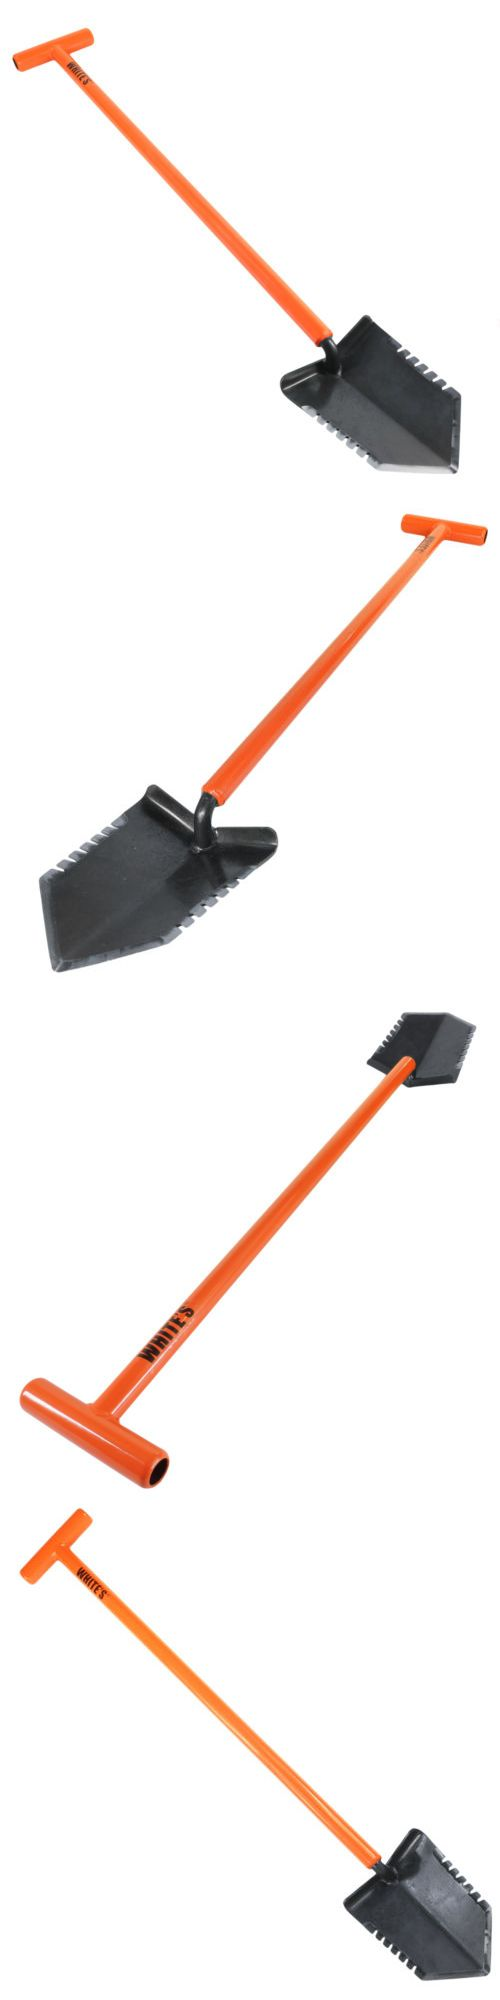 Metal Detector Accessories: White S Ground Hawg Metal Detector Shovel For Serious Hunters -> BUY IT NOW ONLY: $59.95 on eBay!